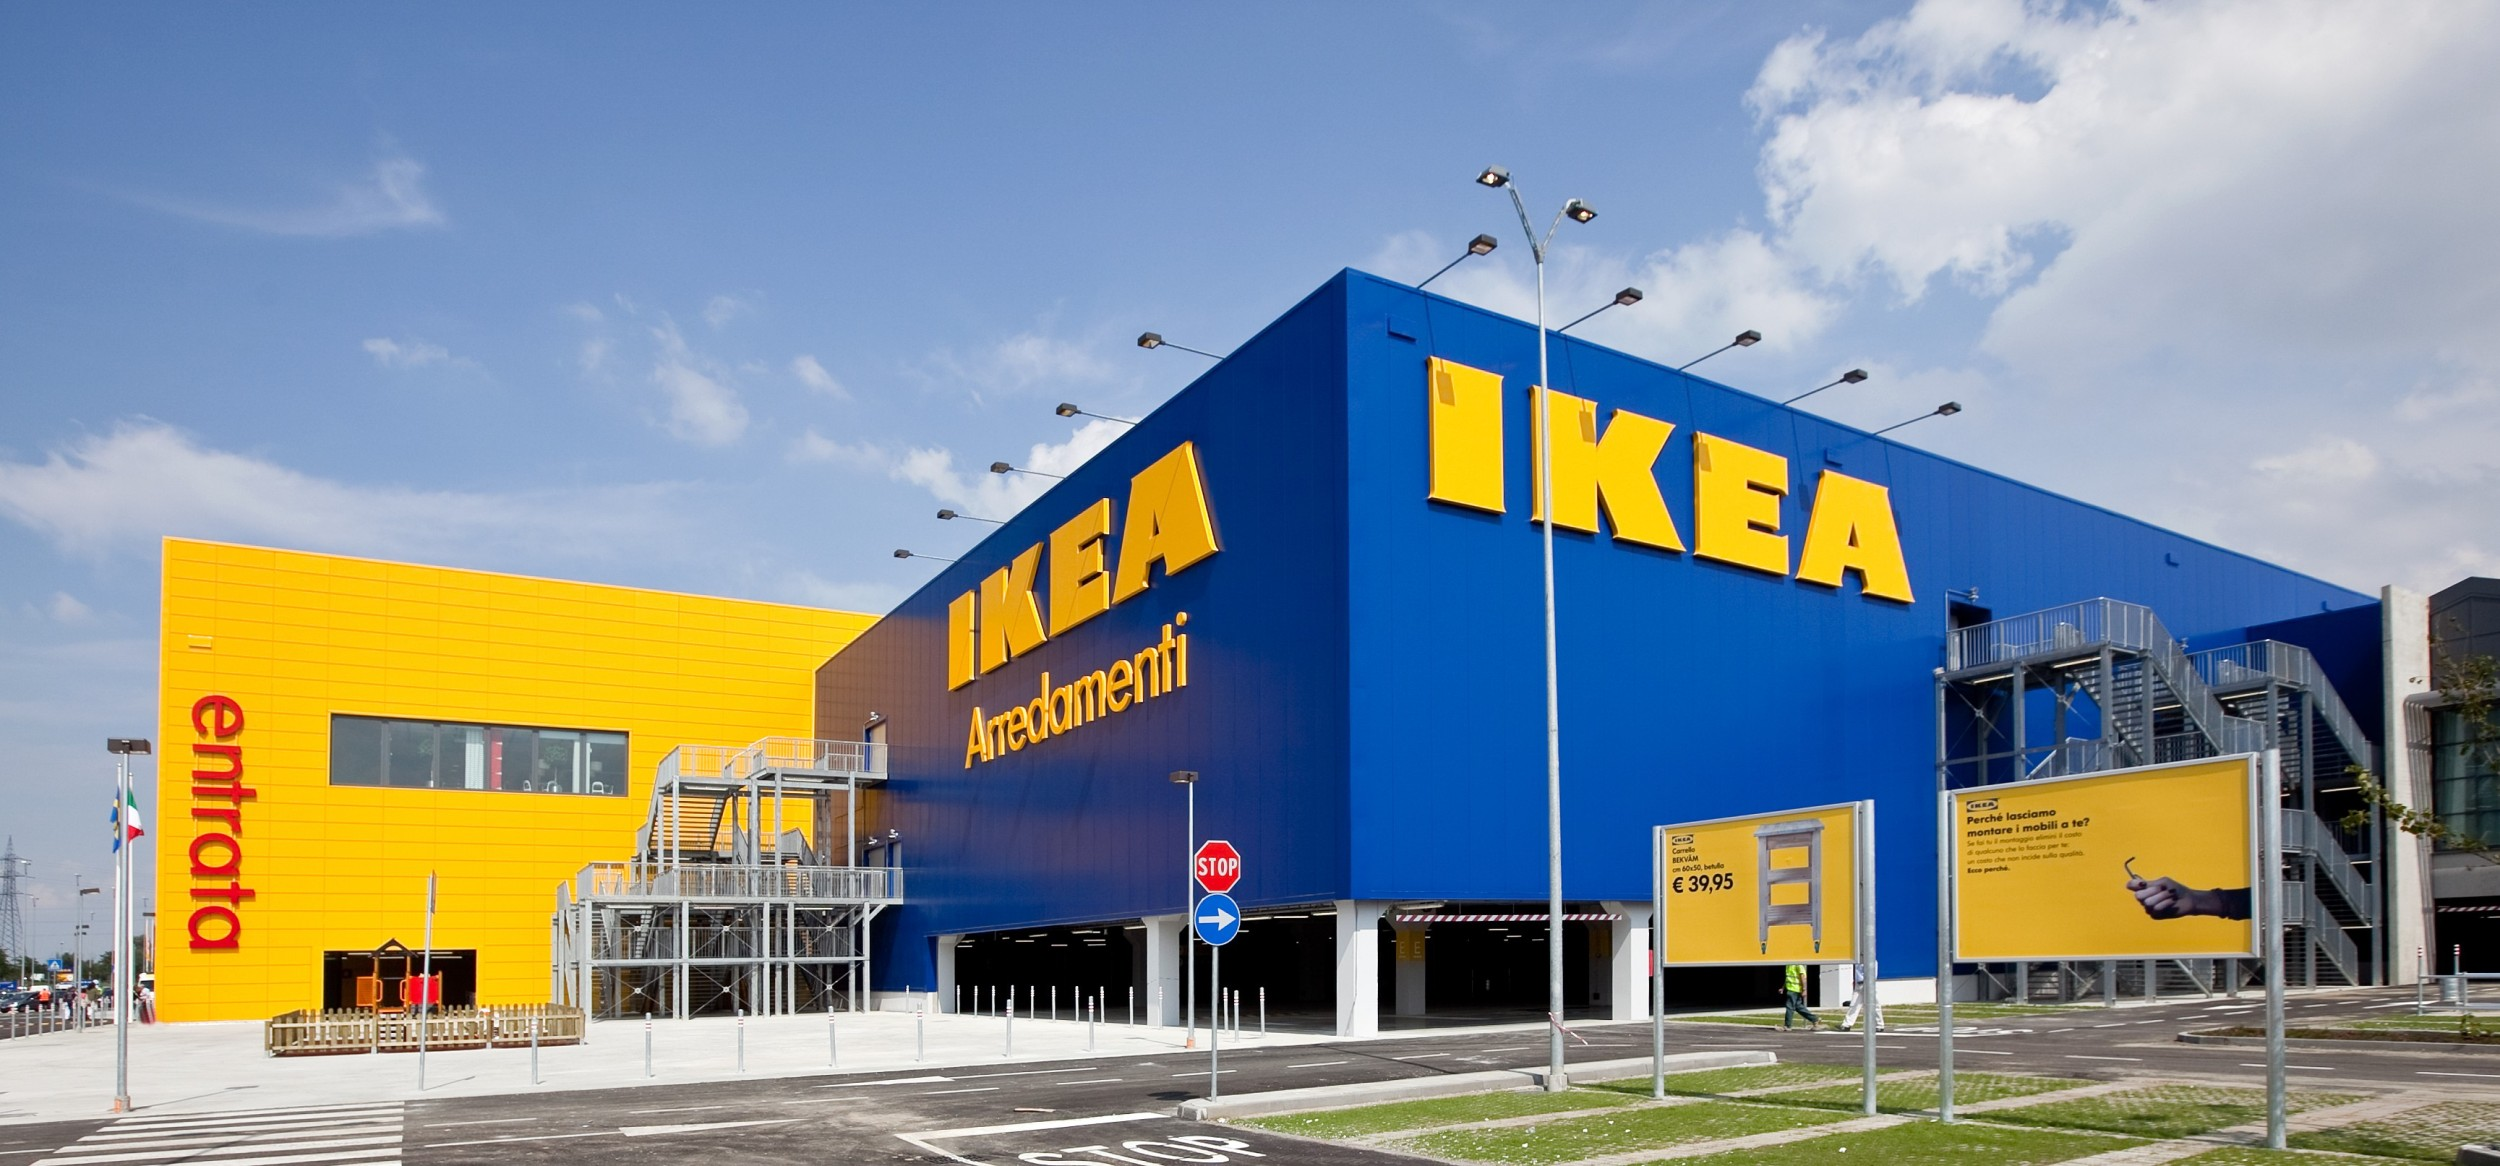 Un sabato all'Ikea.